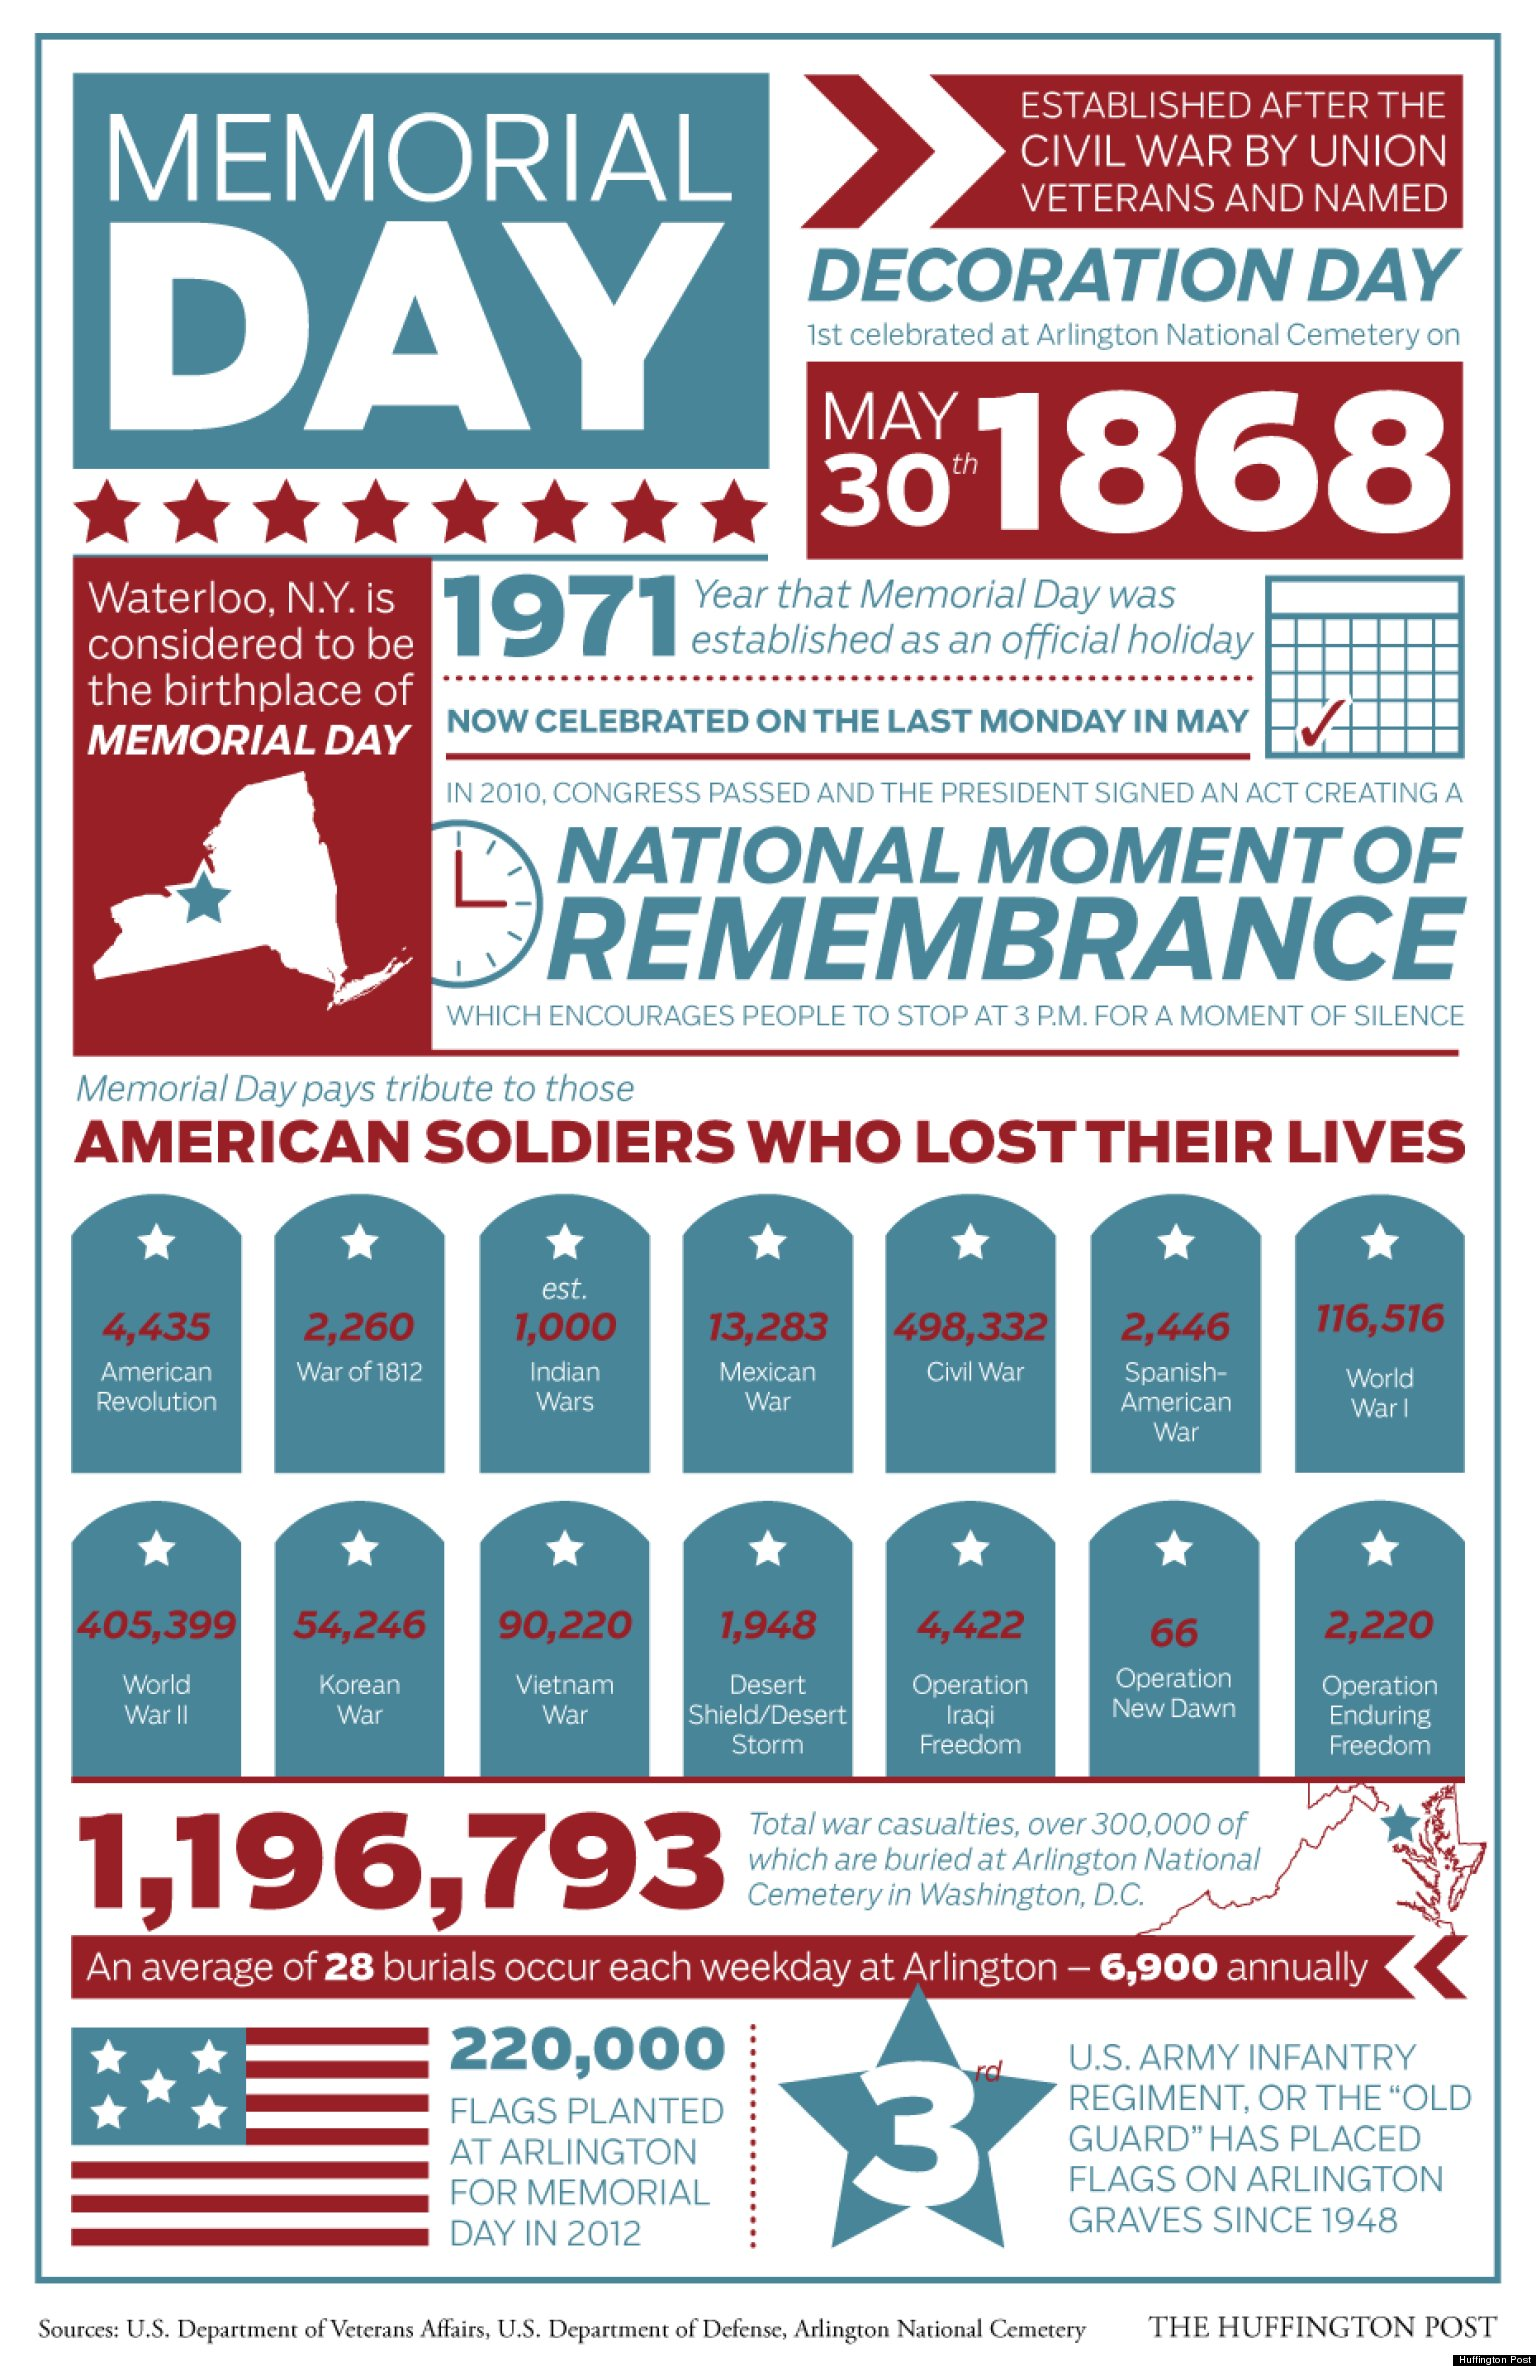 Memorial Day History Facts By The Numbers